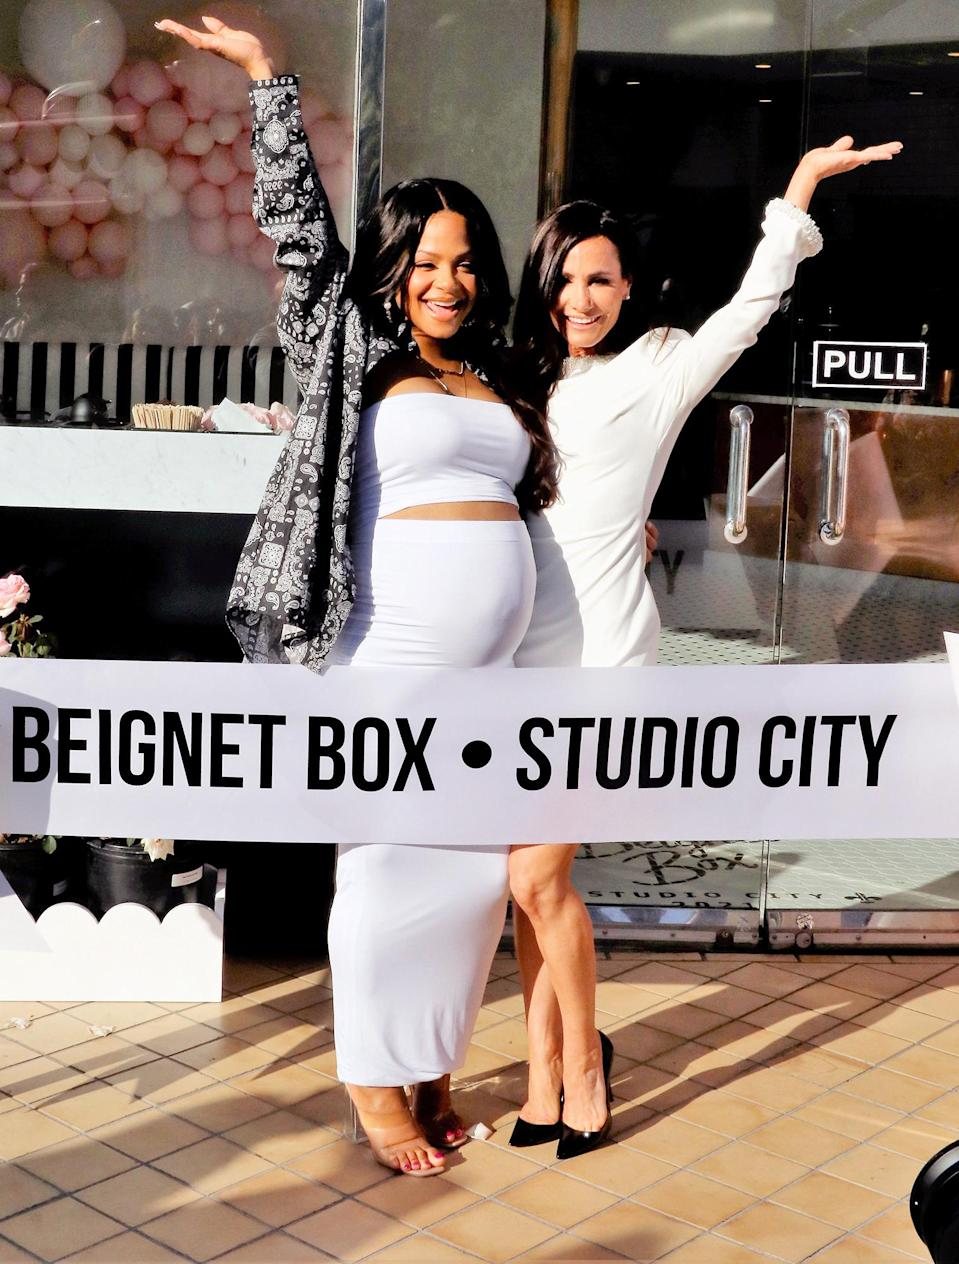 <p>Pregnant Christina Milian was spotted at her Beignet Box grand opening in Studio City, California.</p>